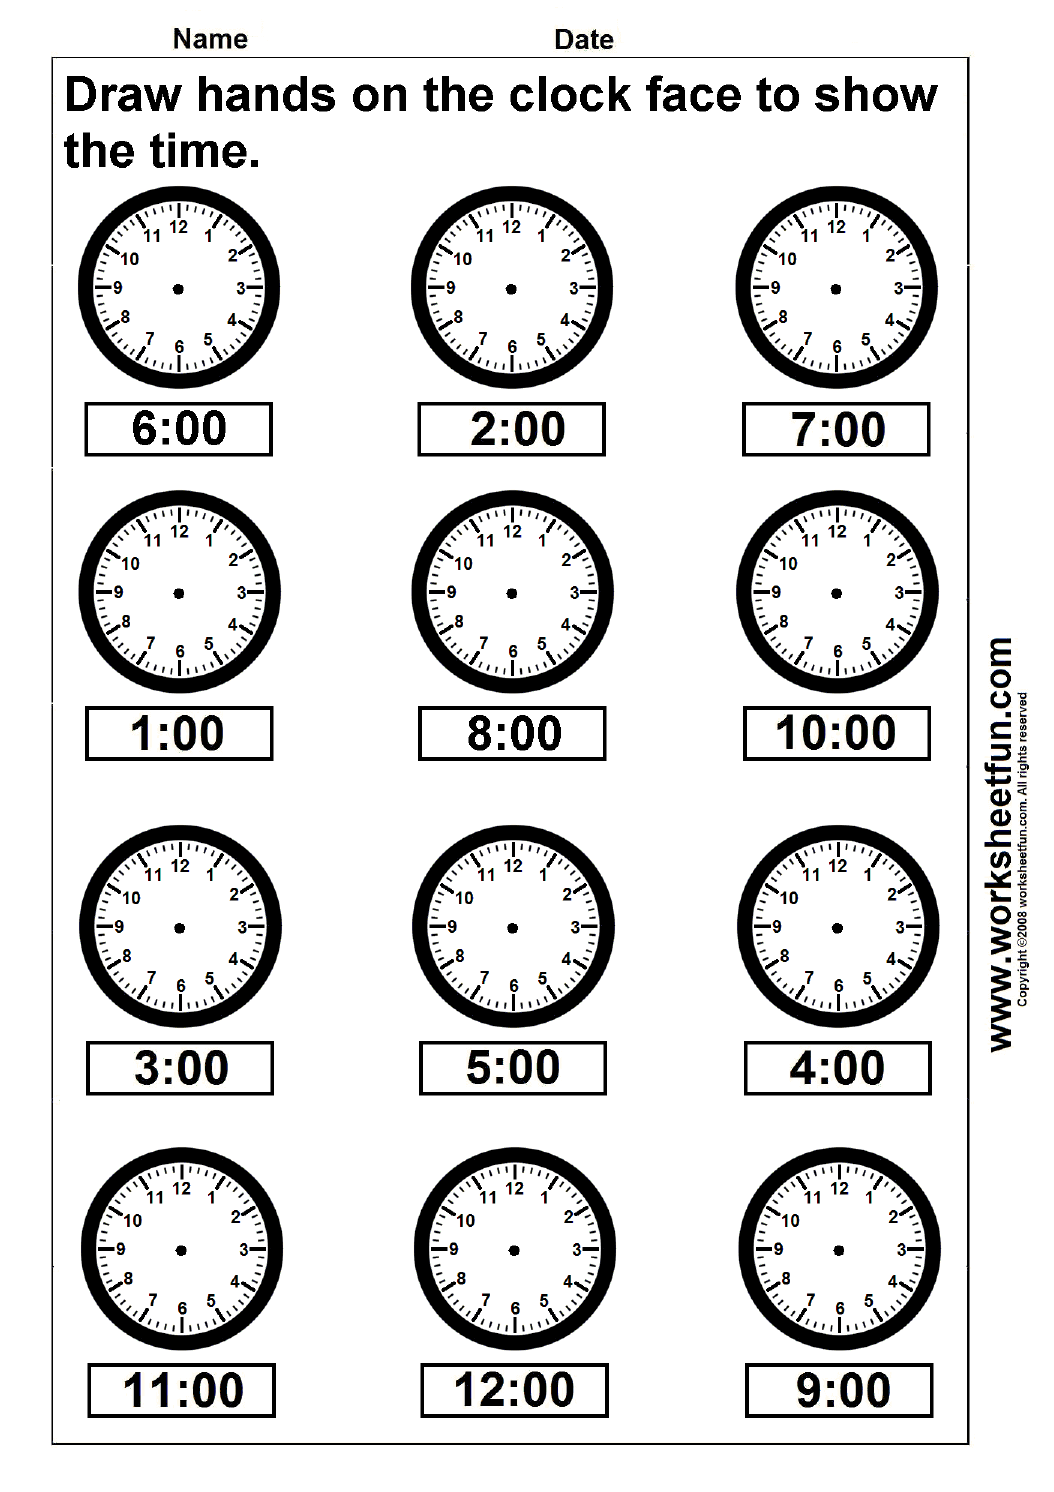 Clock-draw-hands-1